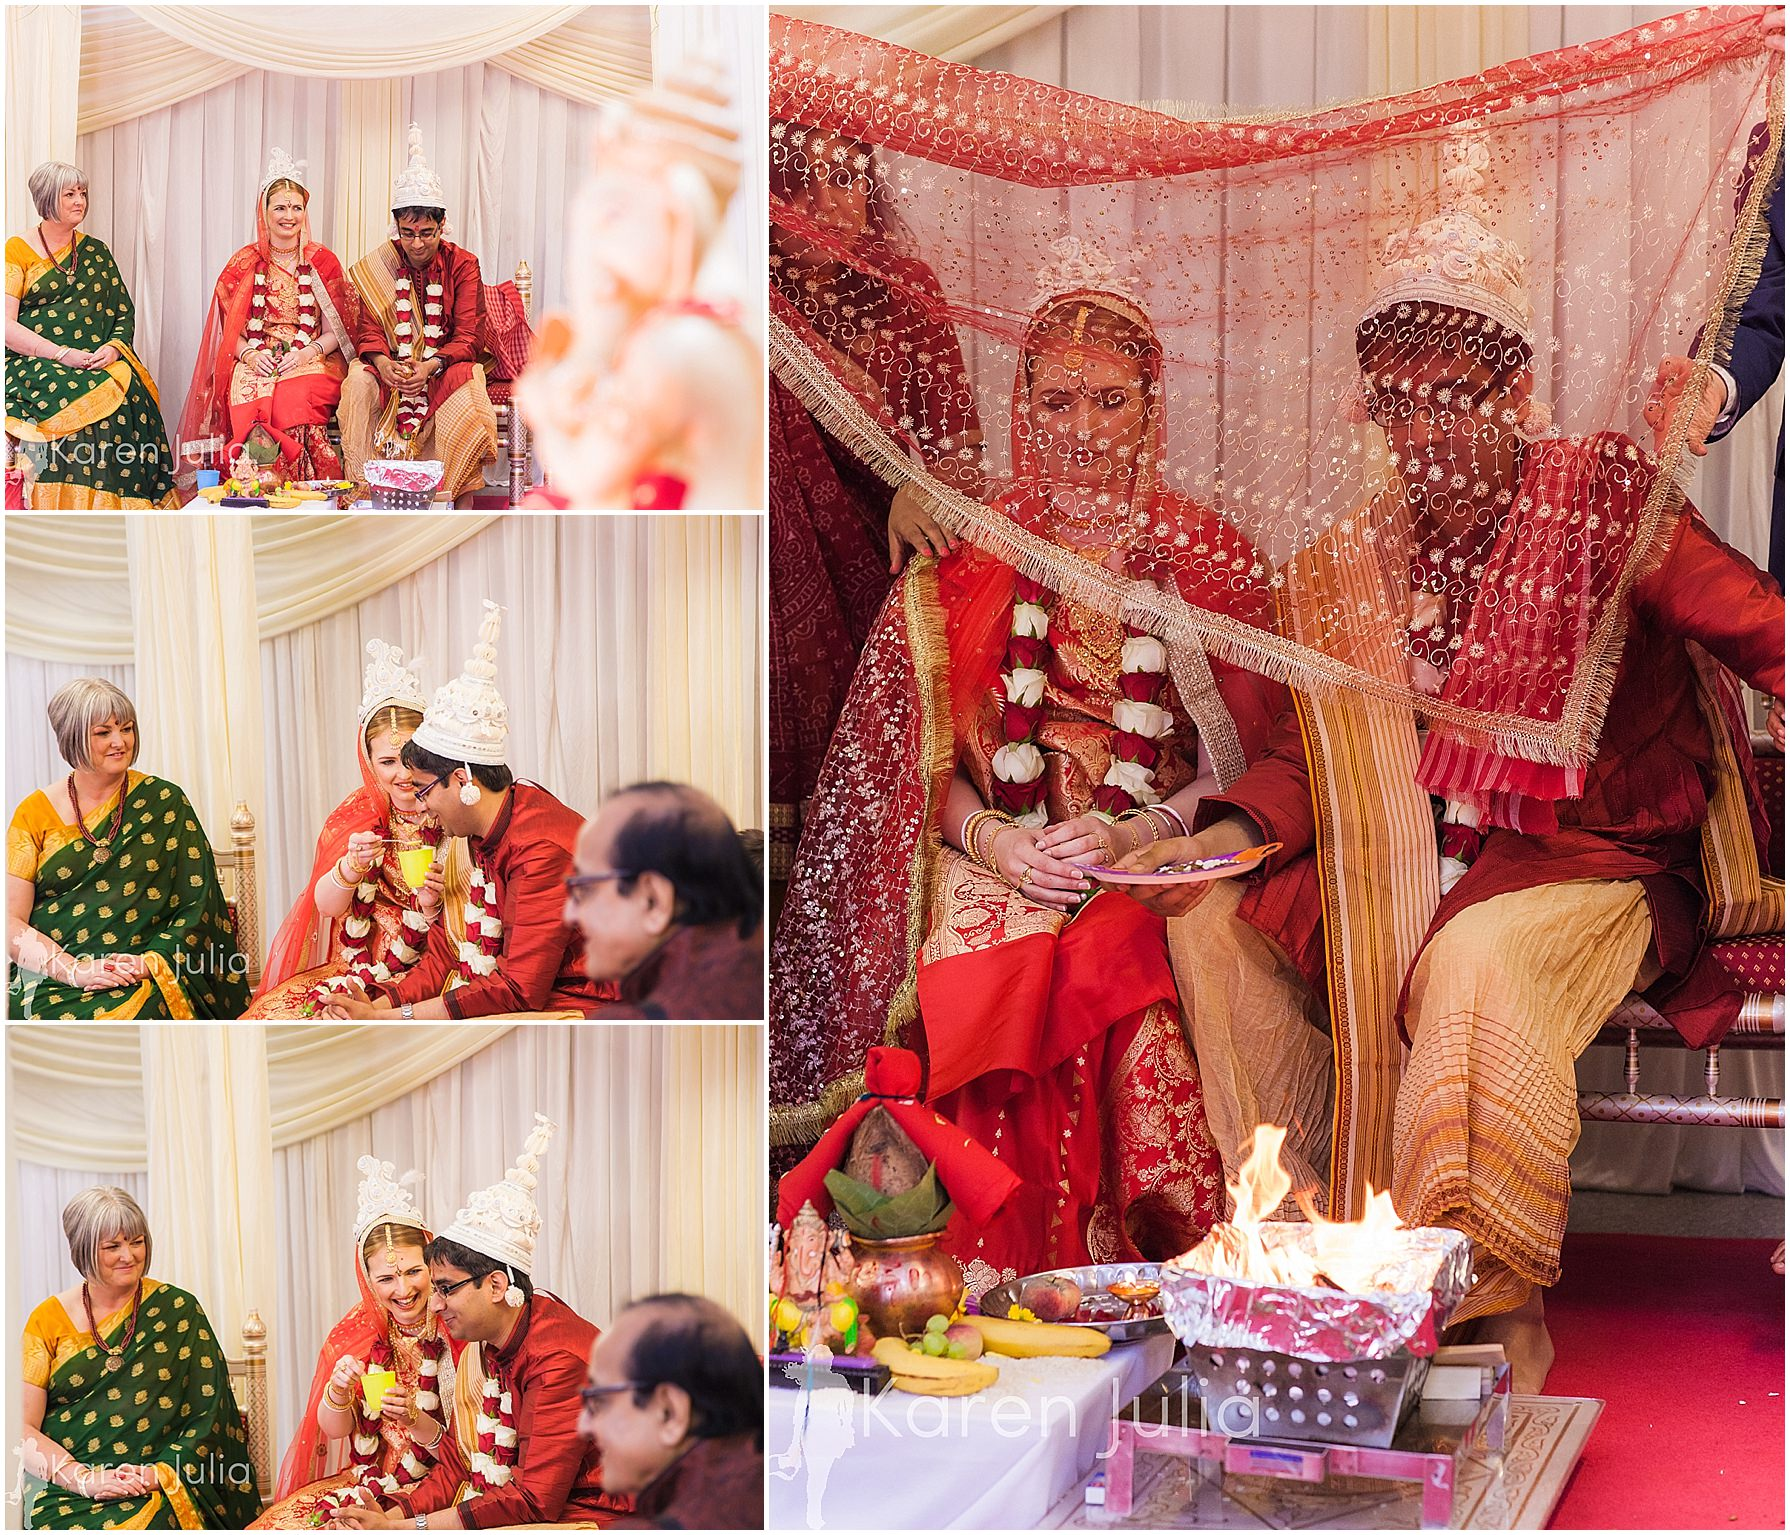 wedding ceremony at Gita Bhavan hindu temple